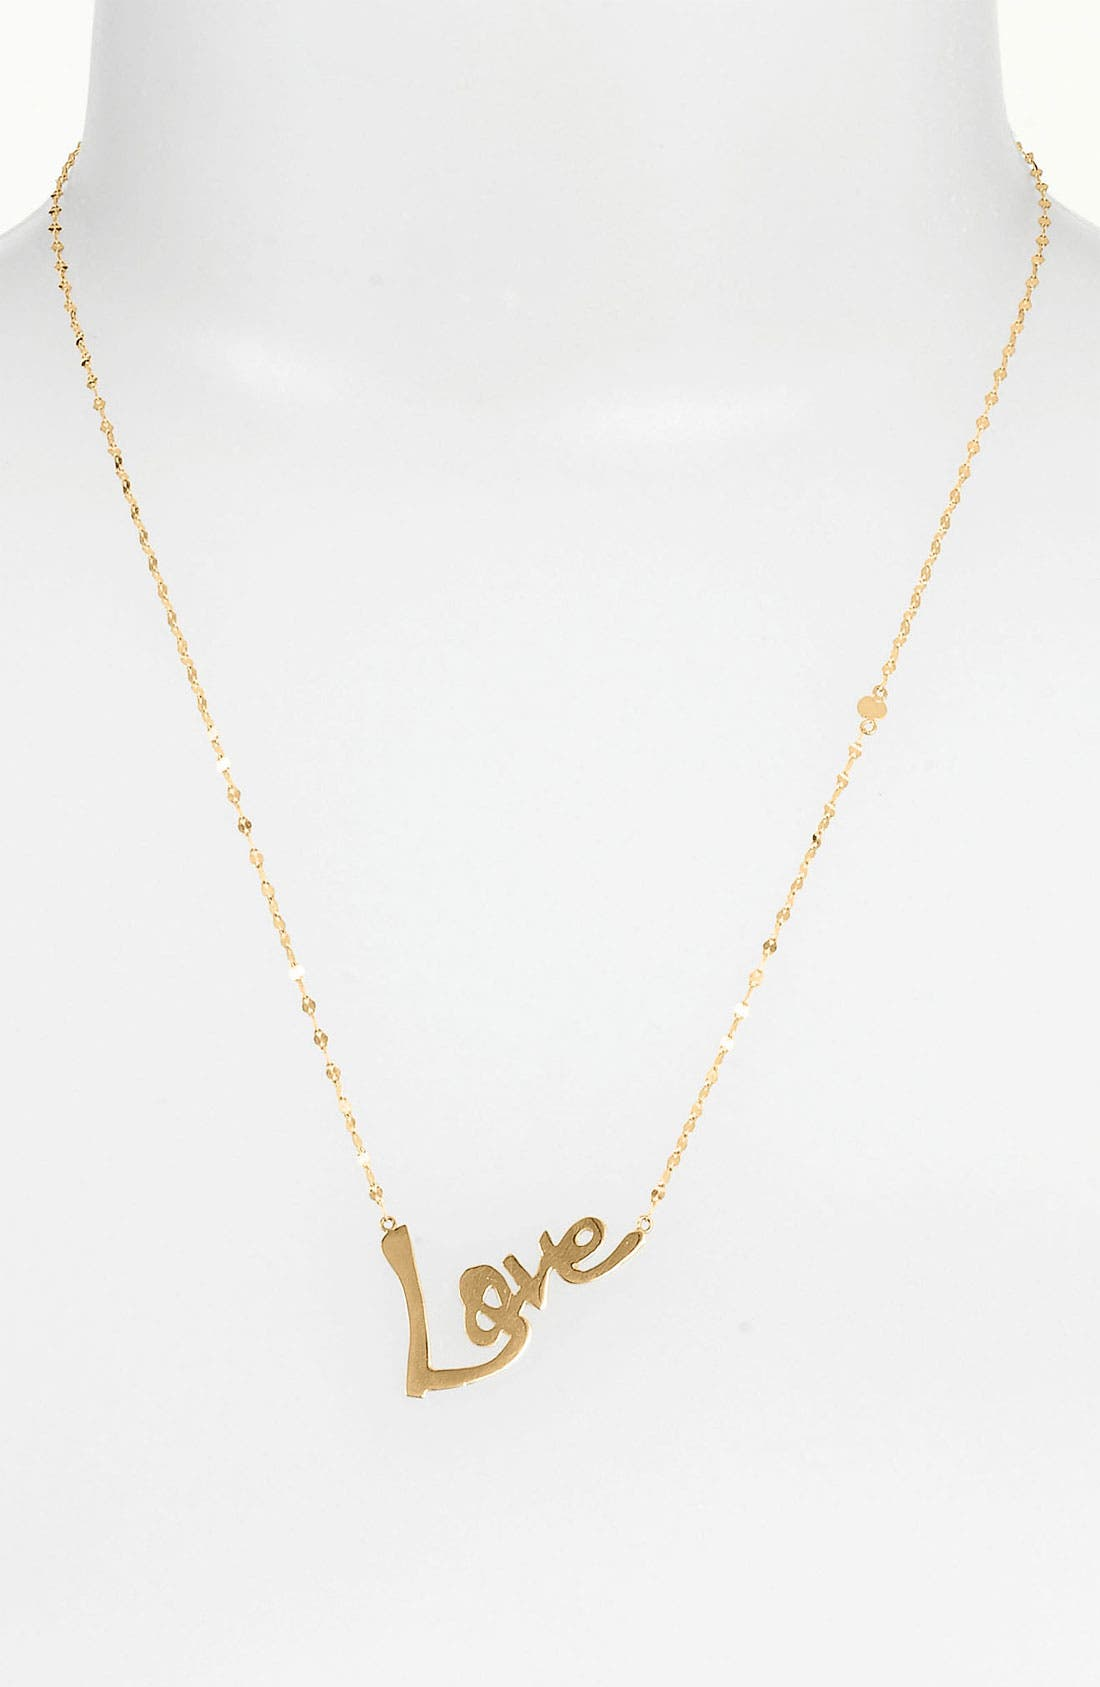 Alternate Image 1 Selected - Lana Jewelry 'Love' Charm Necklace